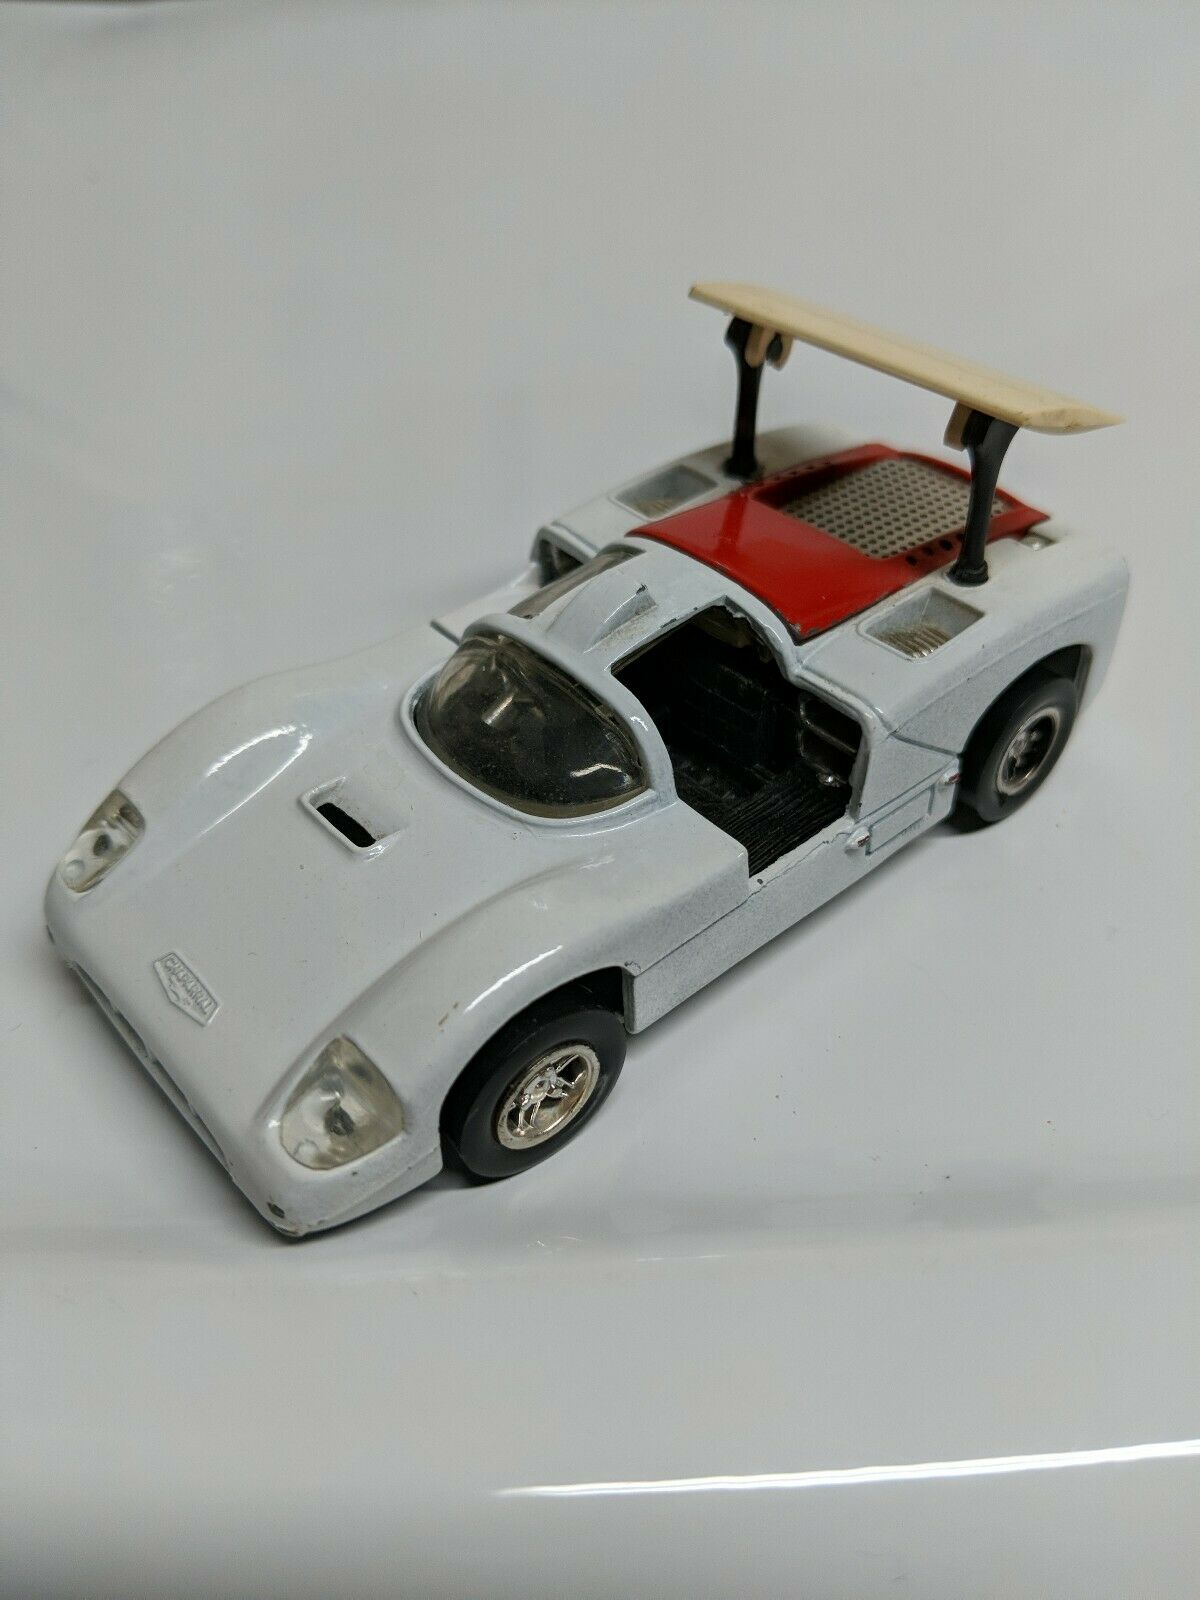 Hot Wheels Chaparral Sputafuoco Heisse Rader Mebetoys 6606 White Made